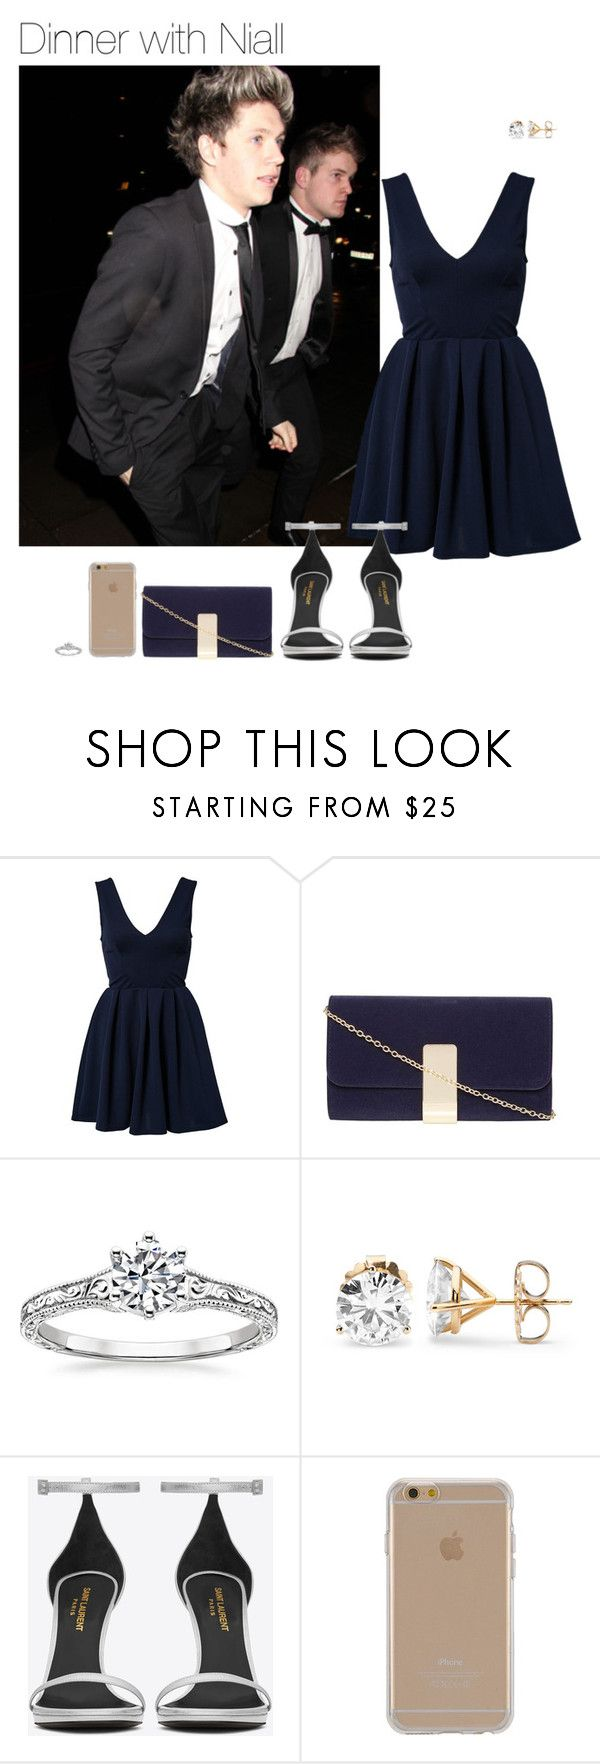 """Dinner with Niall"" by leftsouls ❤ liked on Polyvore featuring TFNC, Dorothy Perkins, Yves Saint Laurent and Agent 18"